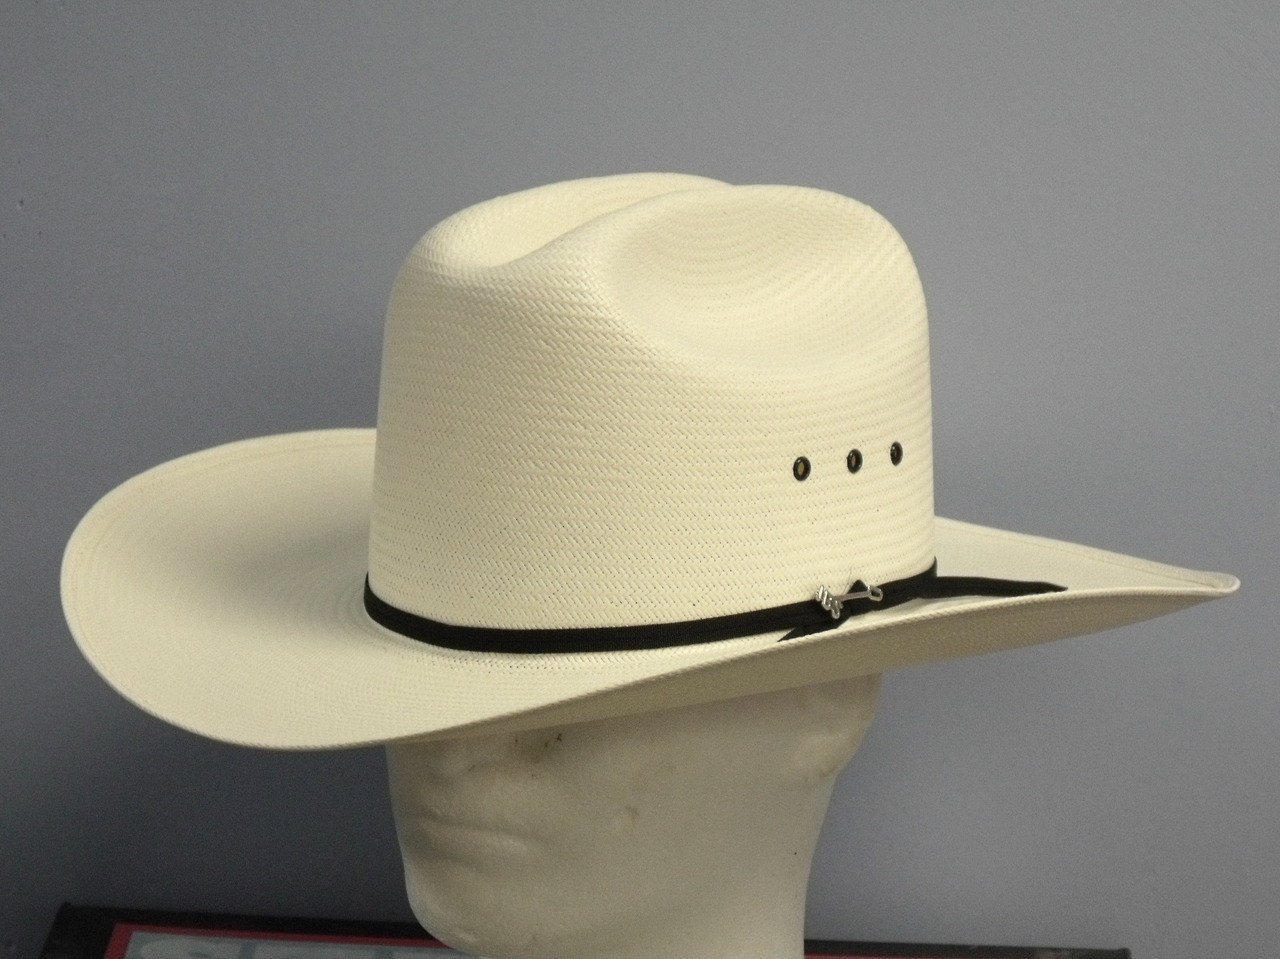 Hats stetson made are where Stetson Hats